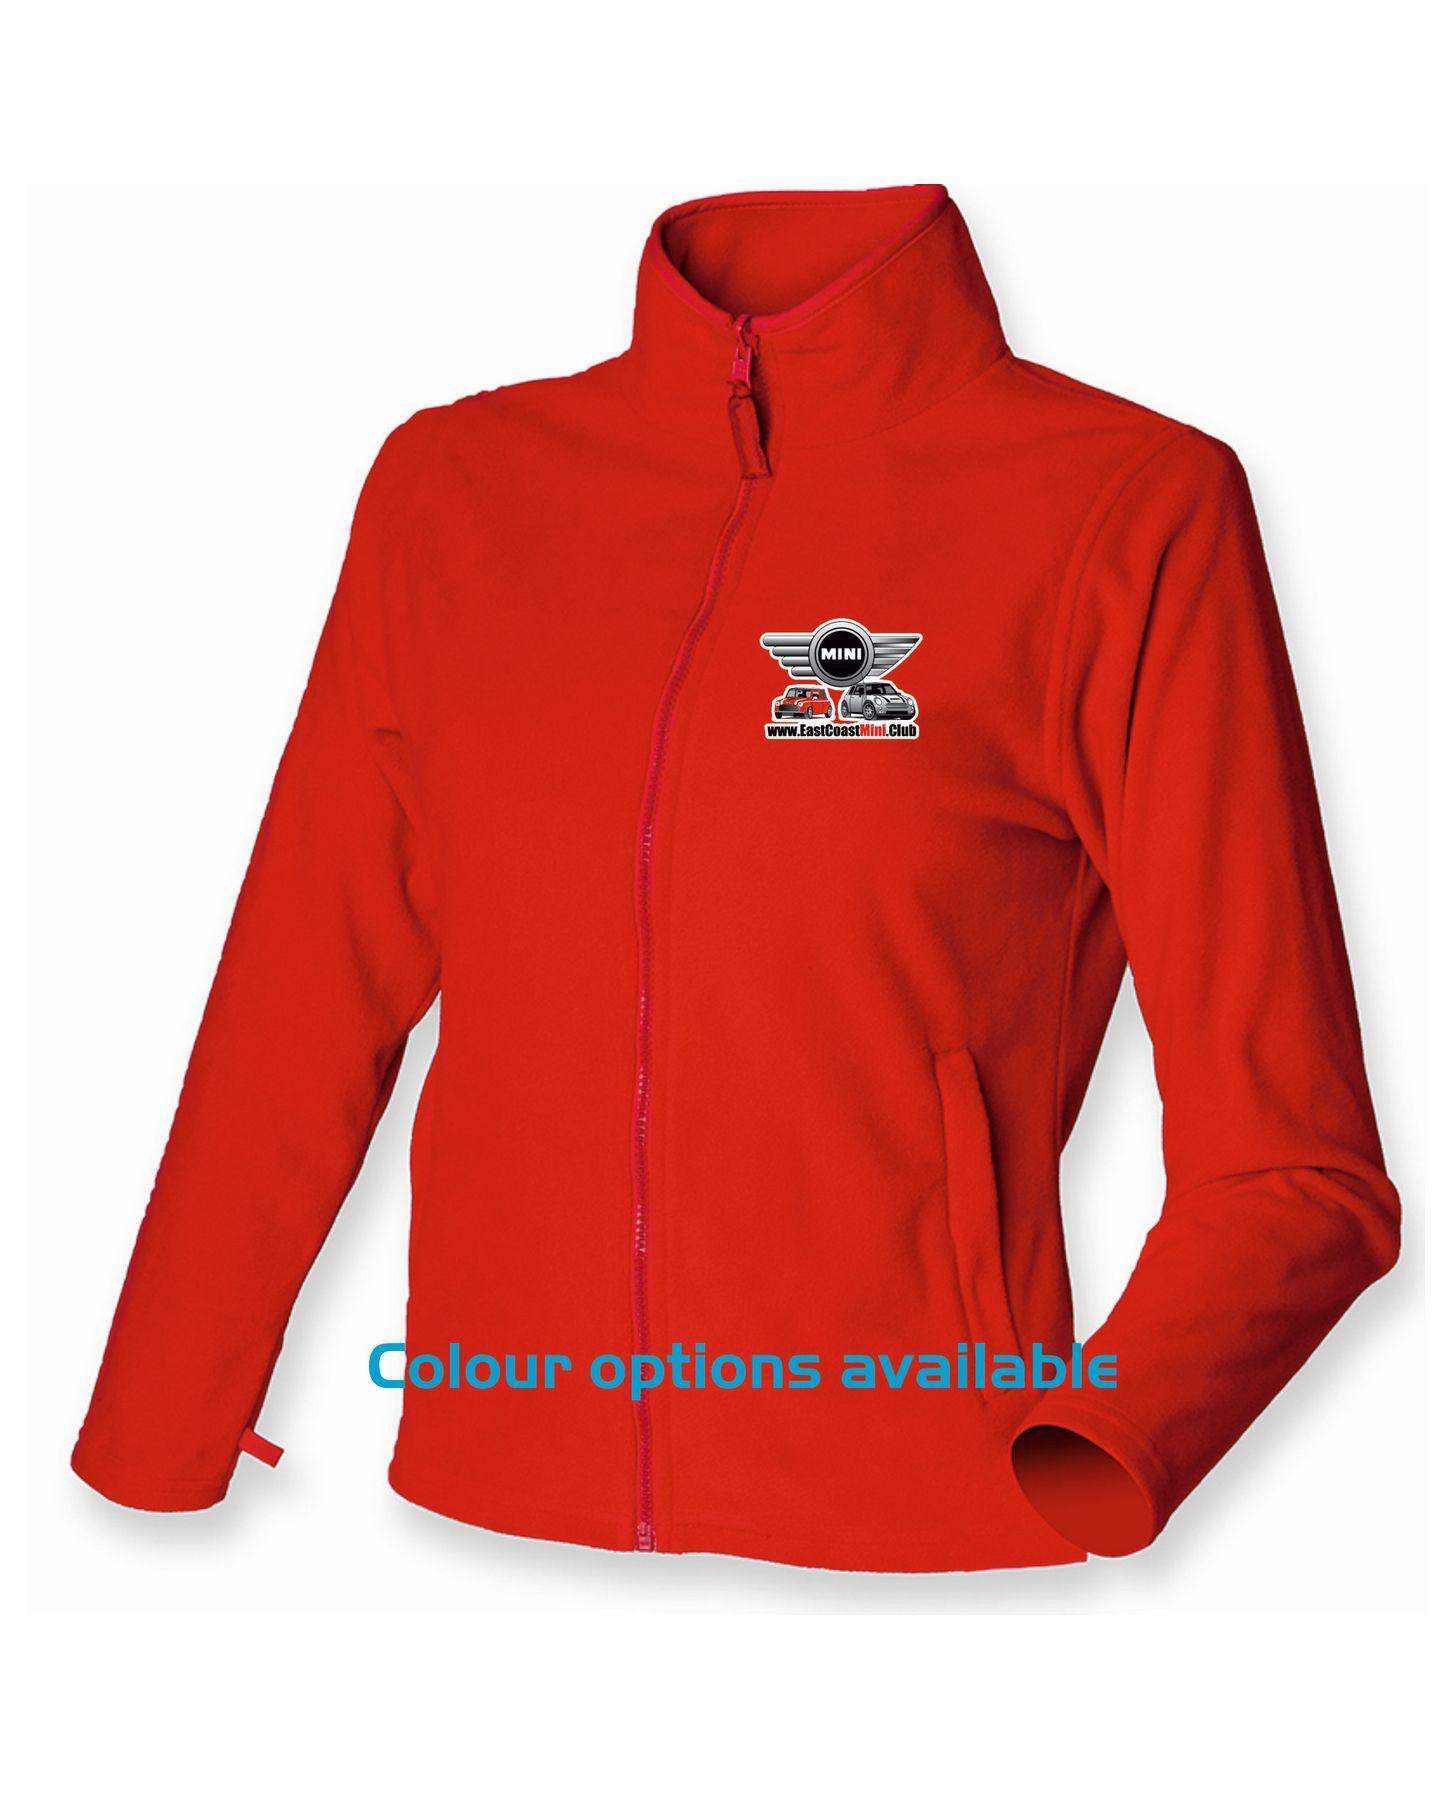 East Coast Mini Club – Fleece Premium Ladyfit